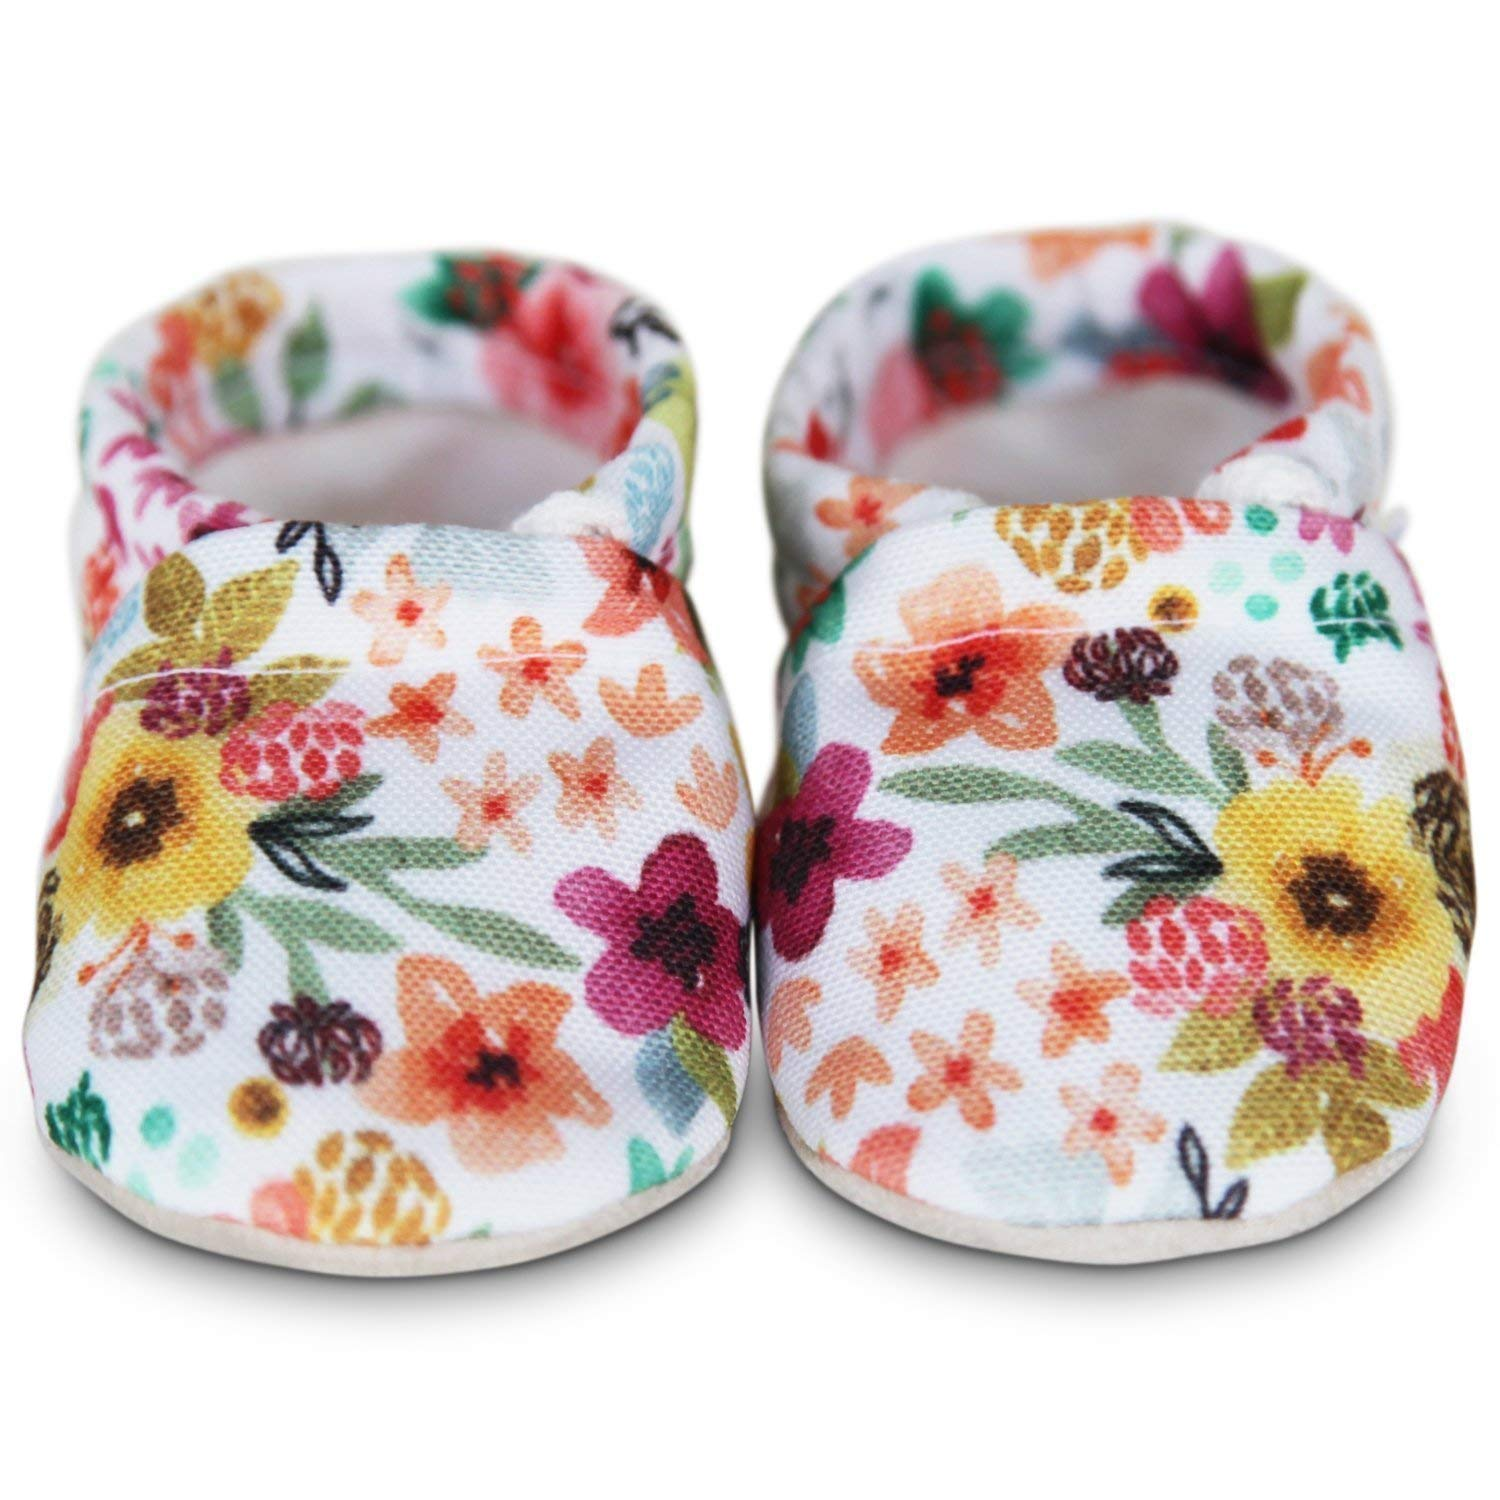 CLAMFEET Organic soft soled baby shoes, JUNE